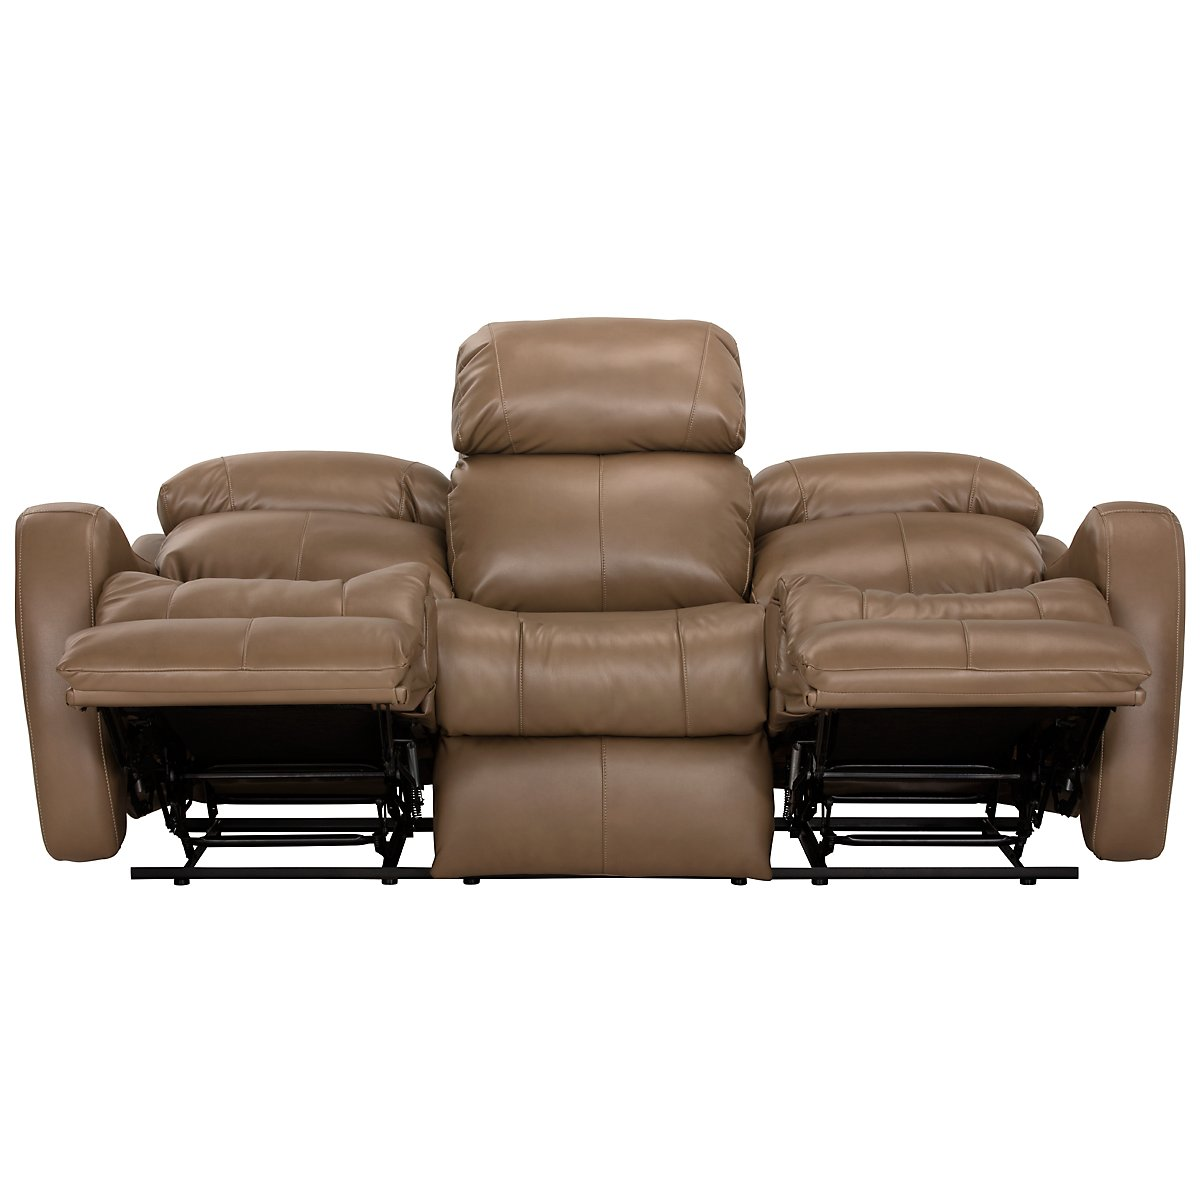 Brown microfiber reclining sofa 2 seat reclining sofa microfiber okaycreations thesofa Brown microfiber couch and loveseat